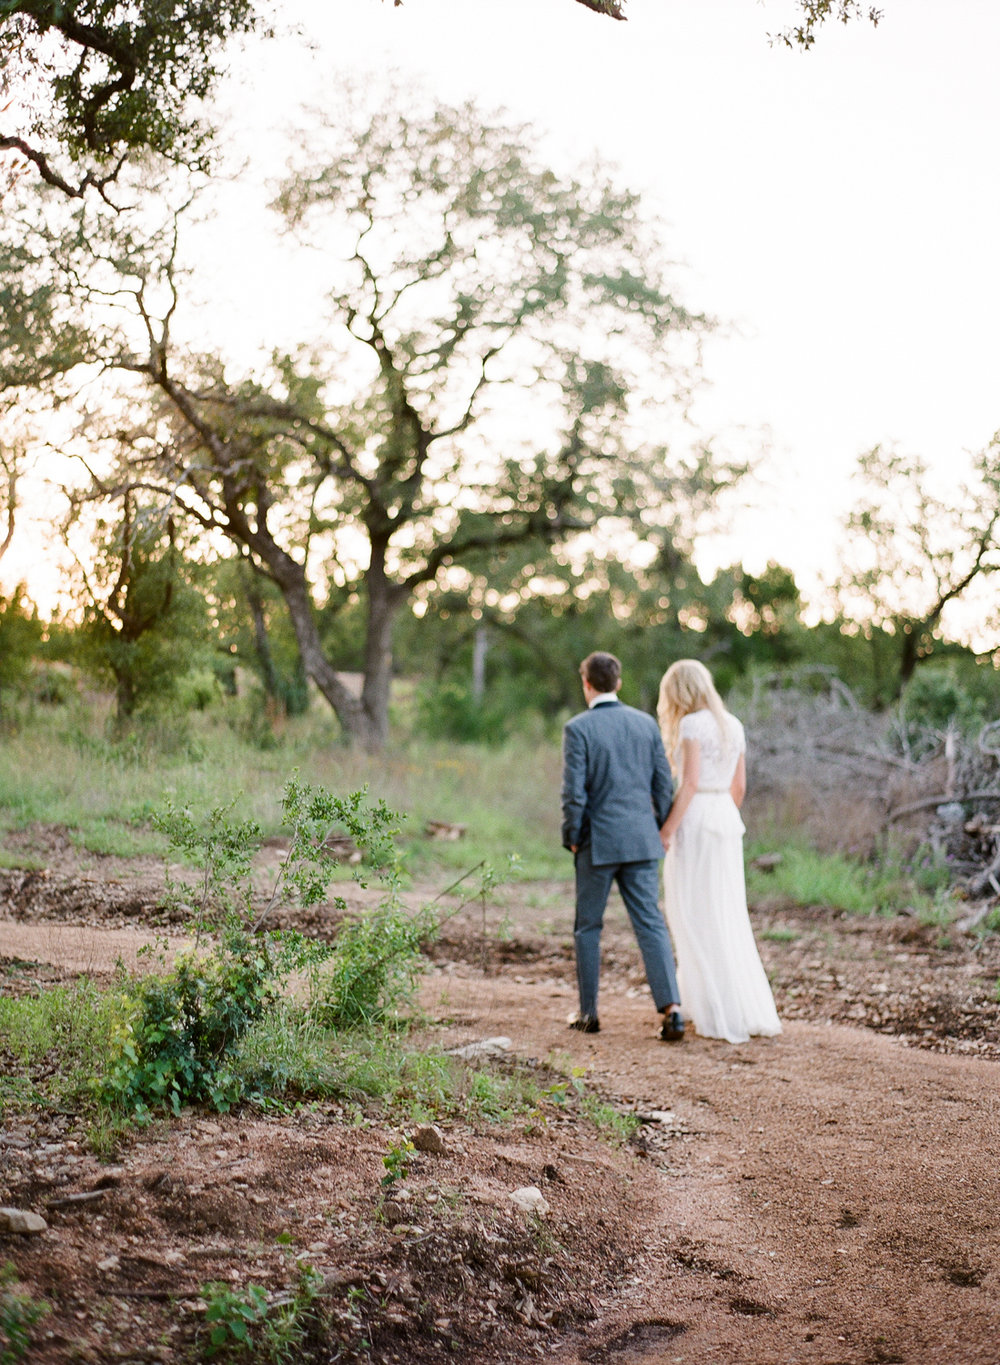 PROSPECT_HOUSE_WEDDING_AUSTIN_TX_BY_MATTHEW_MOORE_PHOTOGRAPHY_00596.jpg